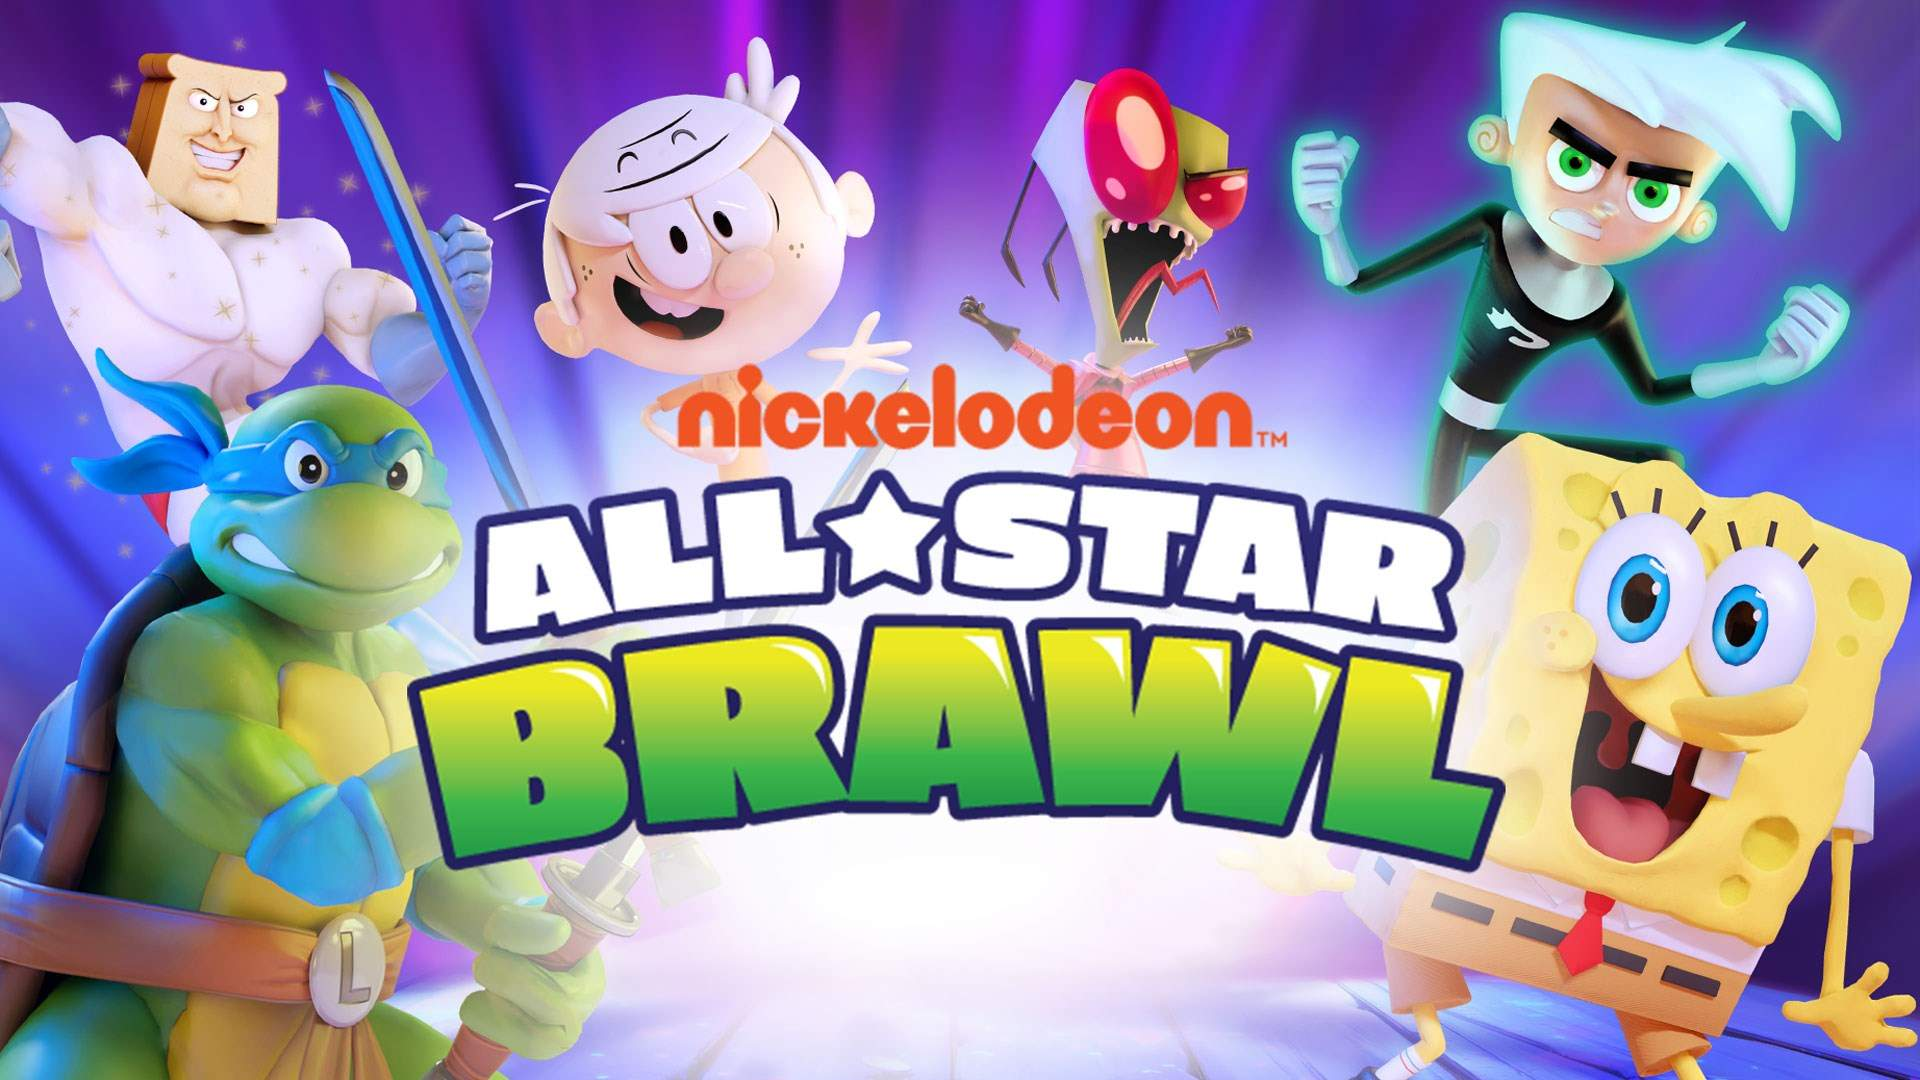 Nickelodeon All-Star Brawl Is Now Available For Digital Pre-order And Pre-download On Xbox One And Xbox Series X|S 1